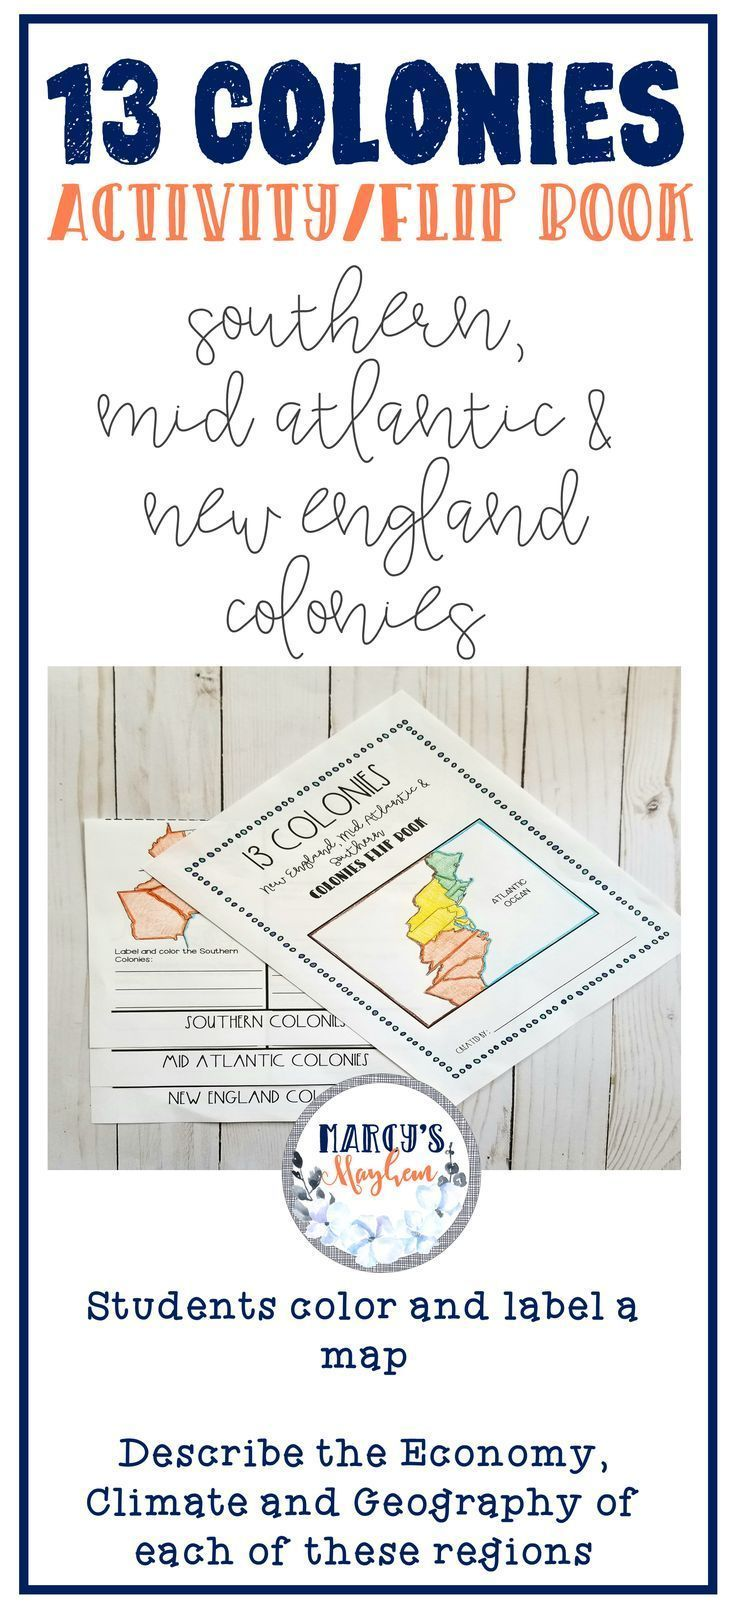 worksheet 13 Colonies Worksheets 25 legjobb a pinteresten kapcsolatban 13 this colonies activities book is great for students learning about new england the mid atlantic and sou